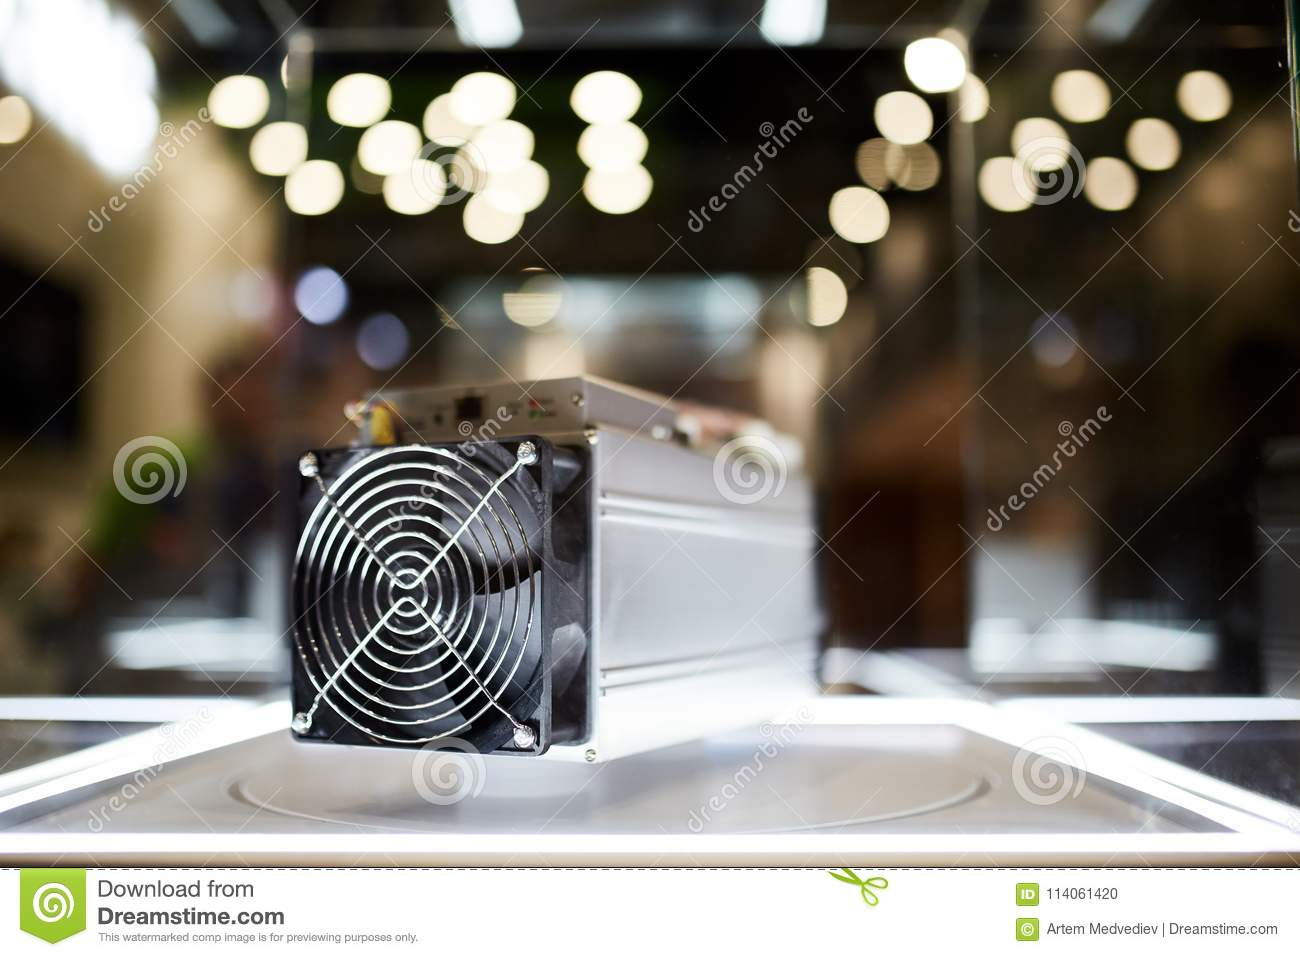 Download Cryptocurrency Mining Equipment - ASIC - Application Specific Integrated Circuit On Farm Stand At Expo Editorial Image - Image of board, abstract: 114061420